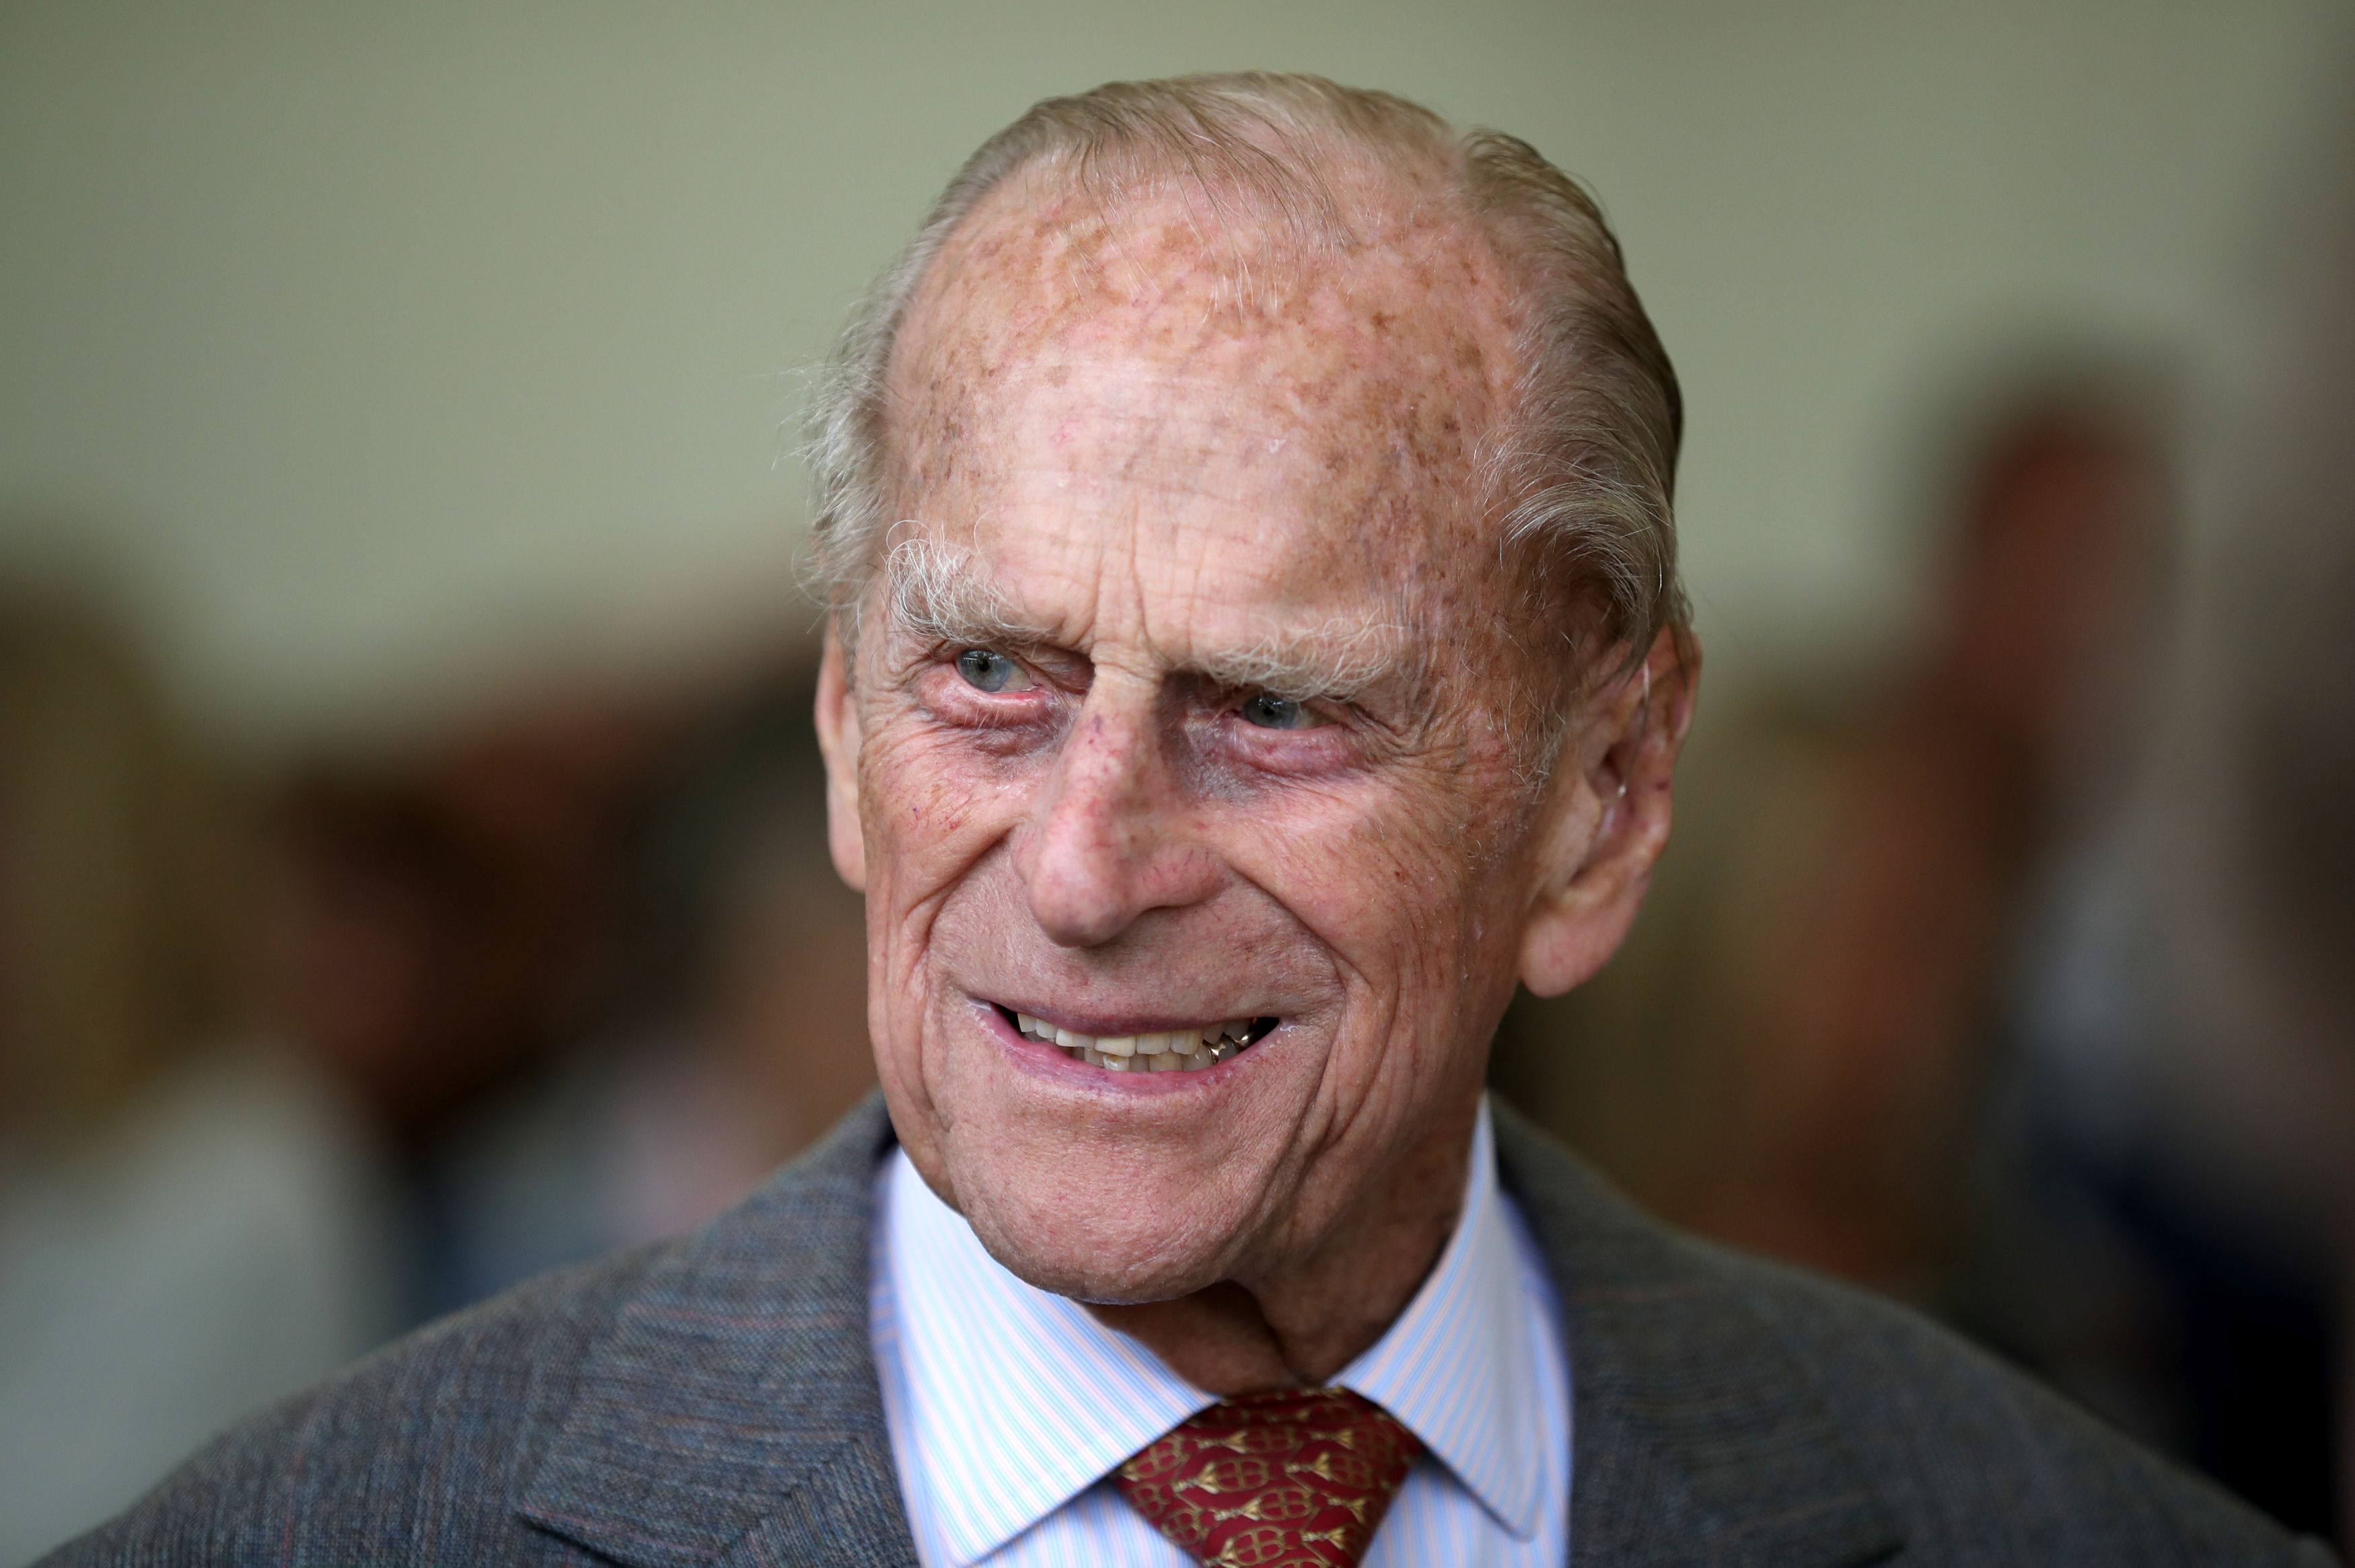 Prince Philip, the Duke of Edinburgh, at the Palace of Holyroodhouse in Edinburgh, July 6, 2017.